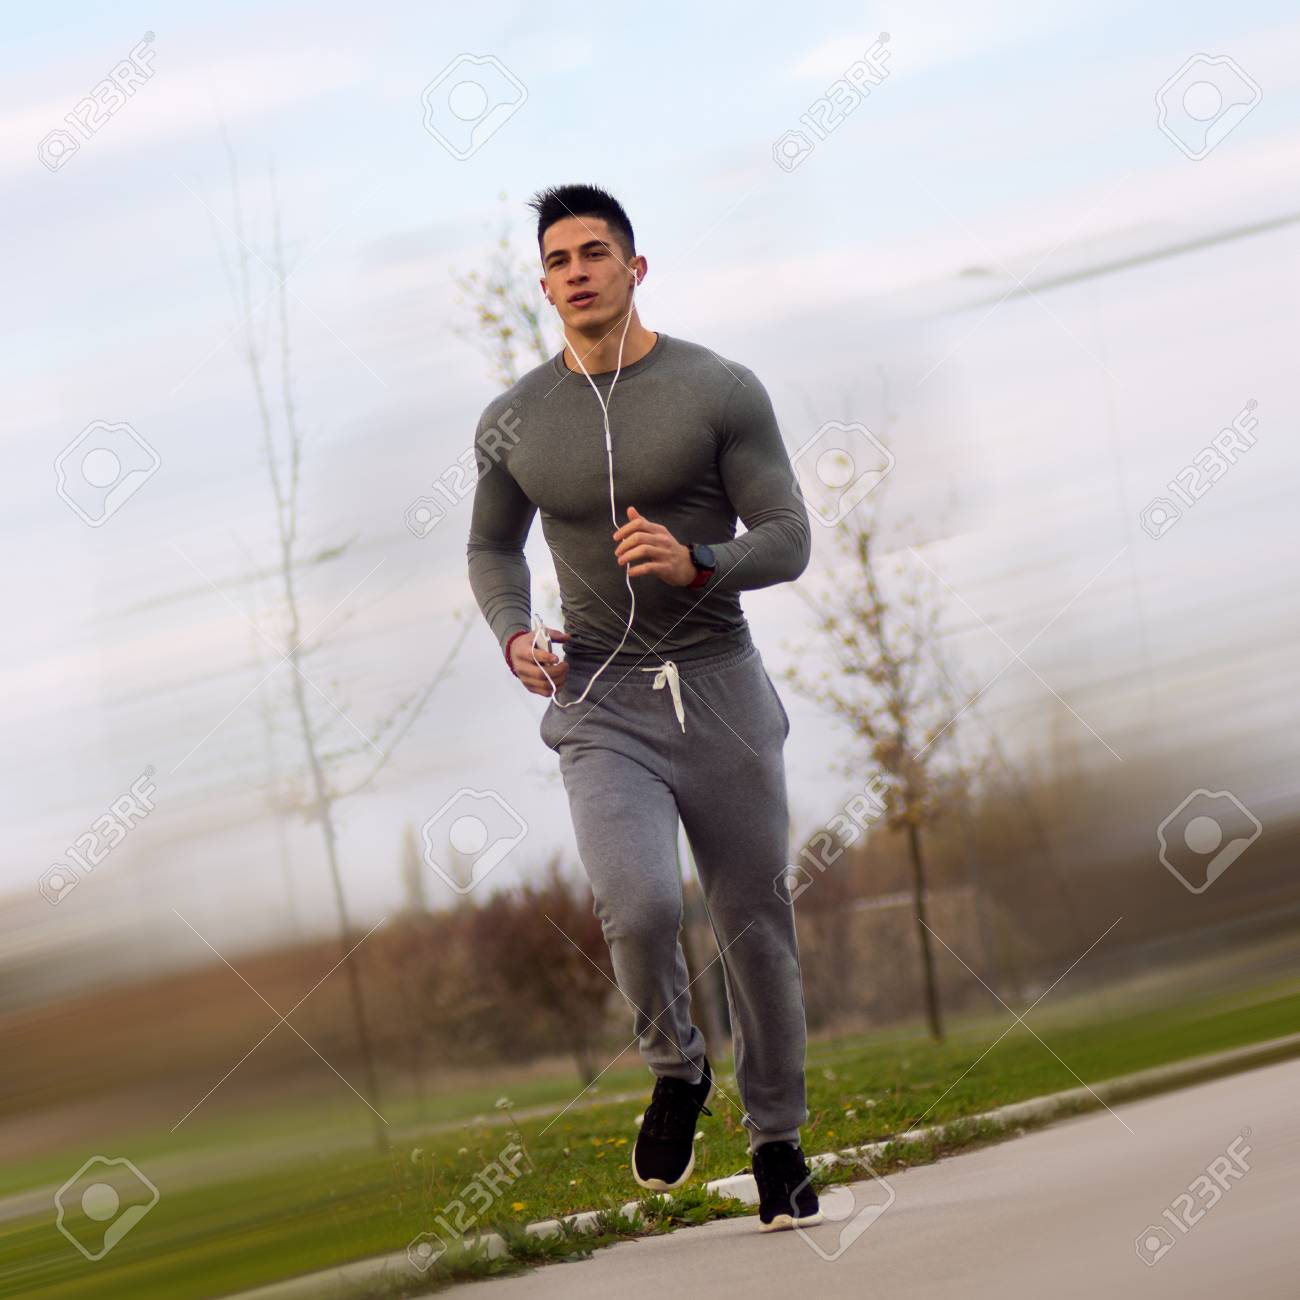 feddf1e7ff44 Stock Photo - The sporty handsome man is jogging and running outdoors as  recreation or sport training with earphones and phone.